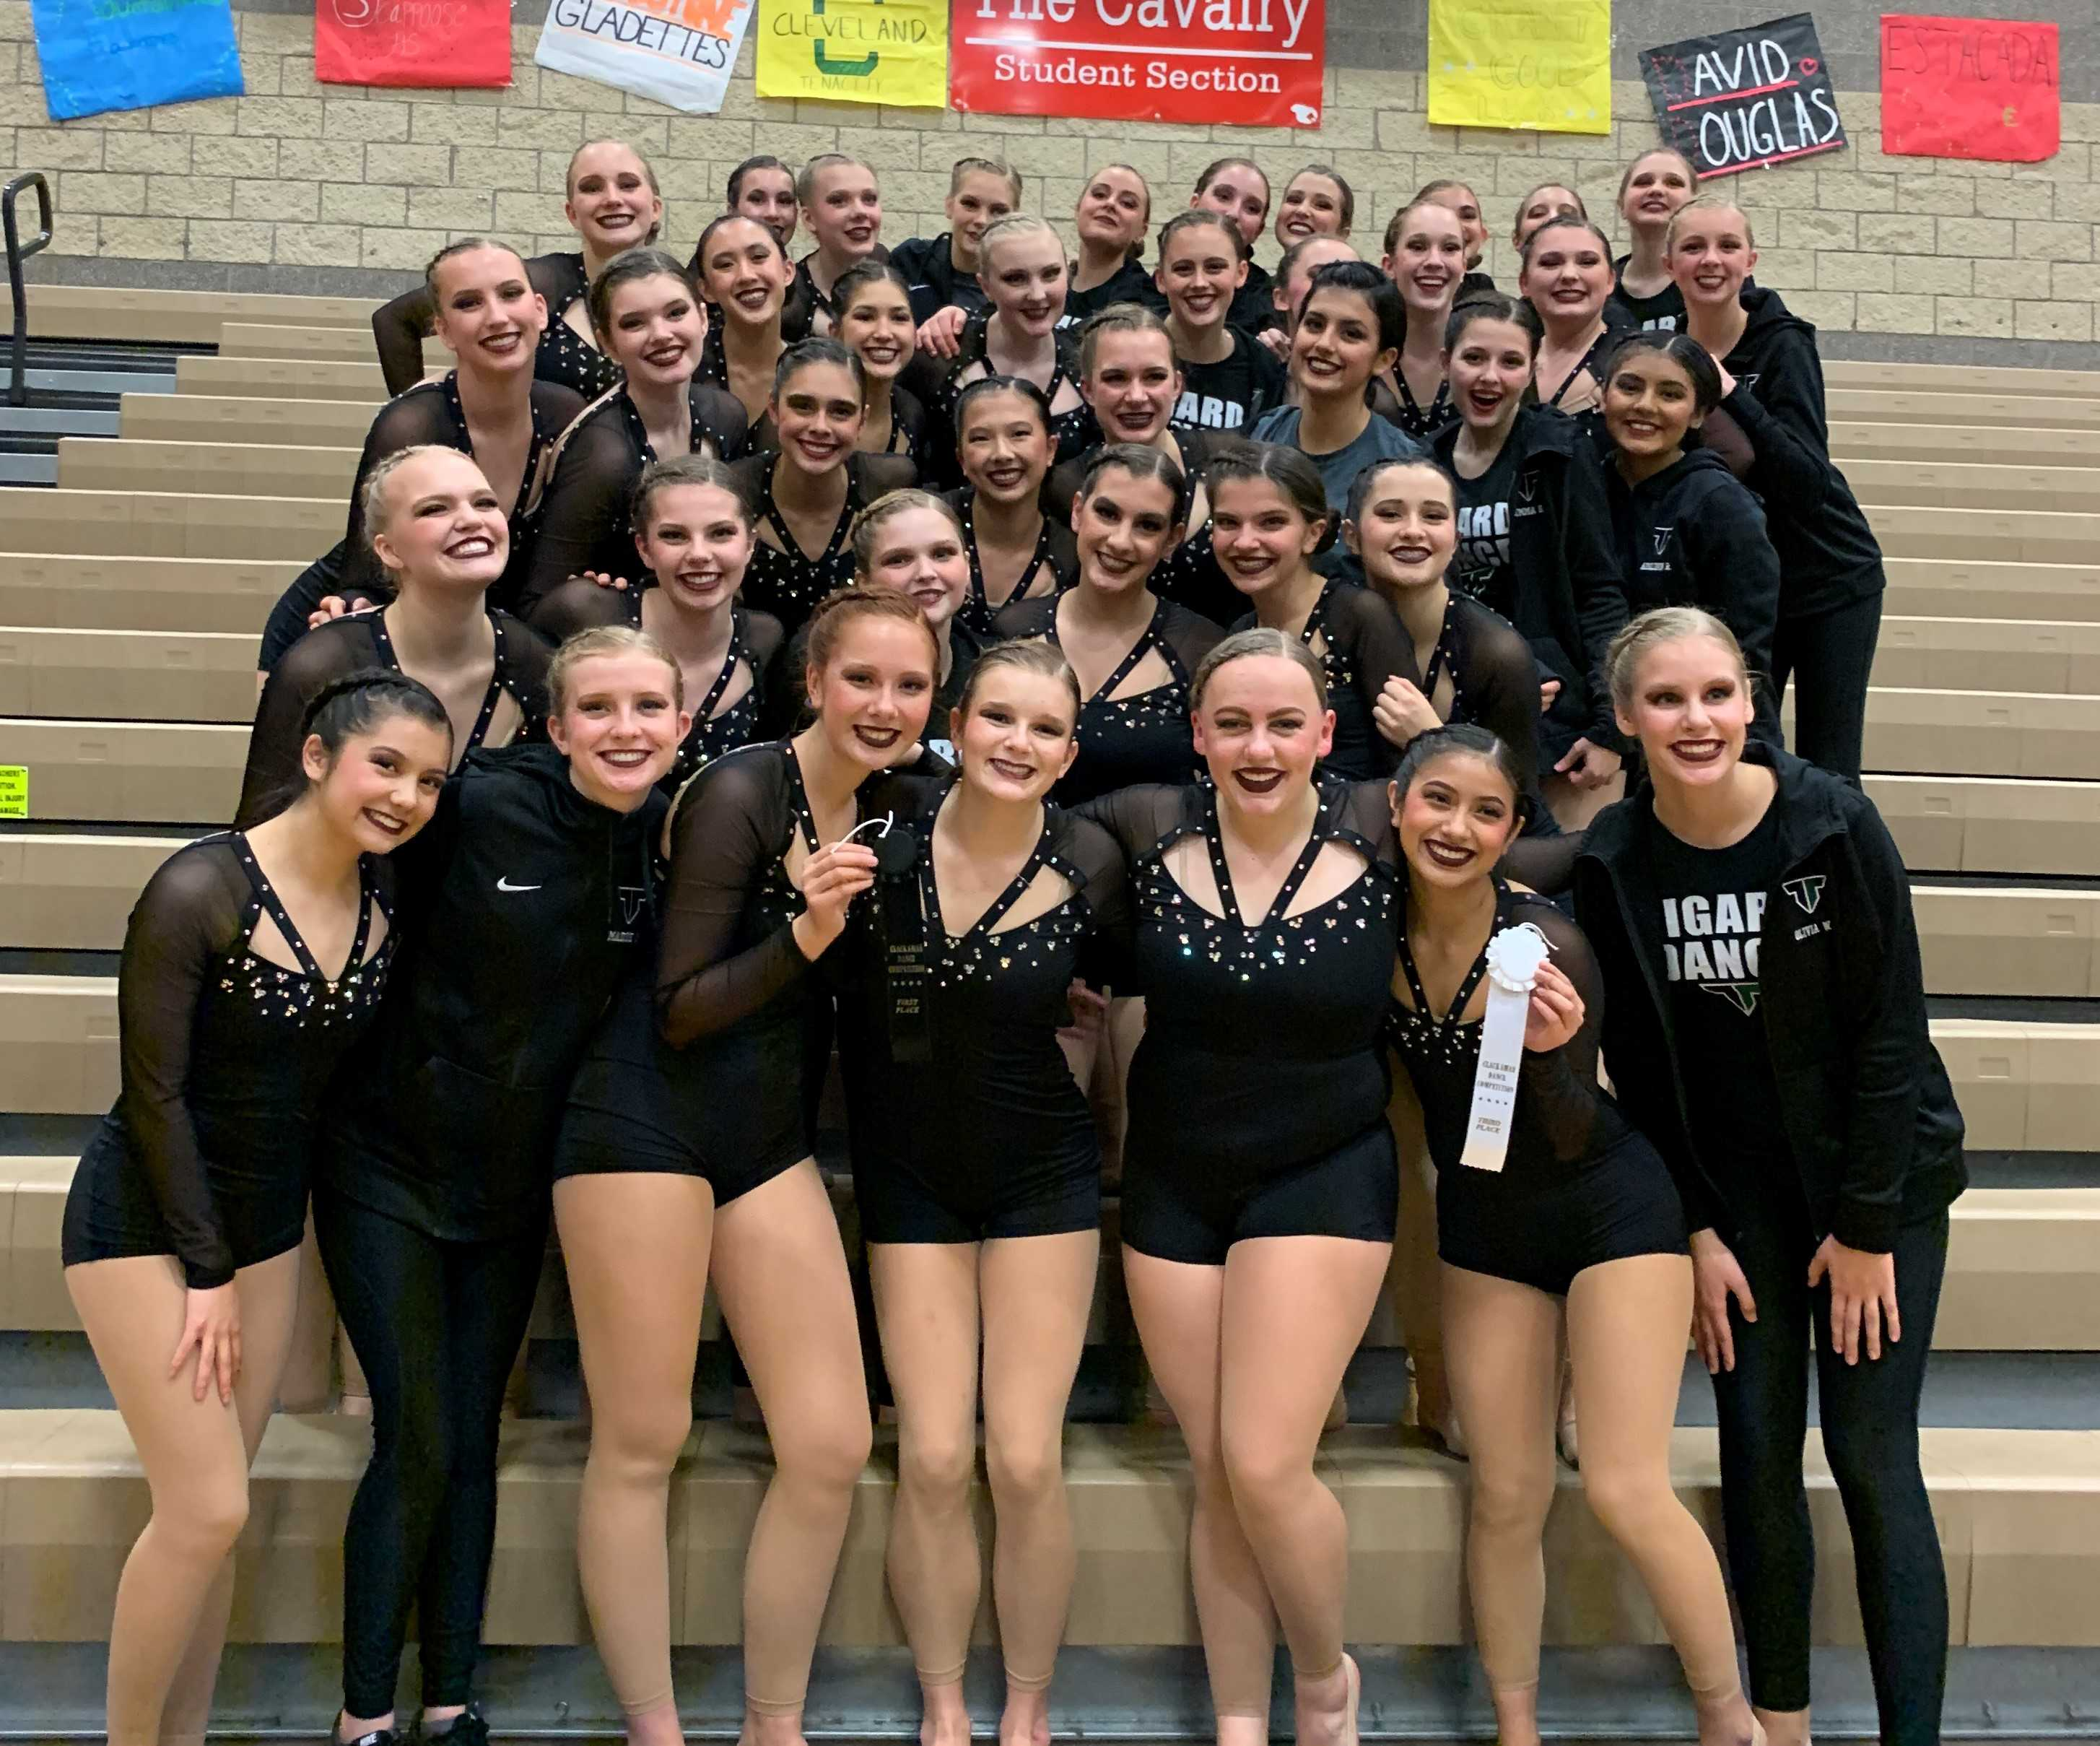 The Tigard Tigerettes had three first place finishes and overall high score at the Clackamas Competition.